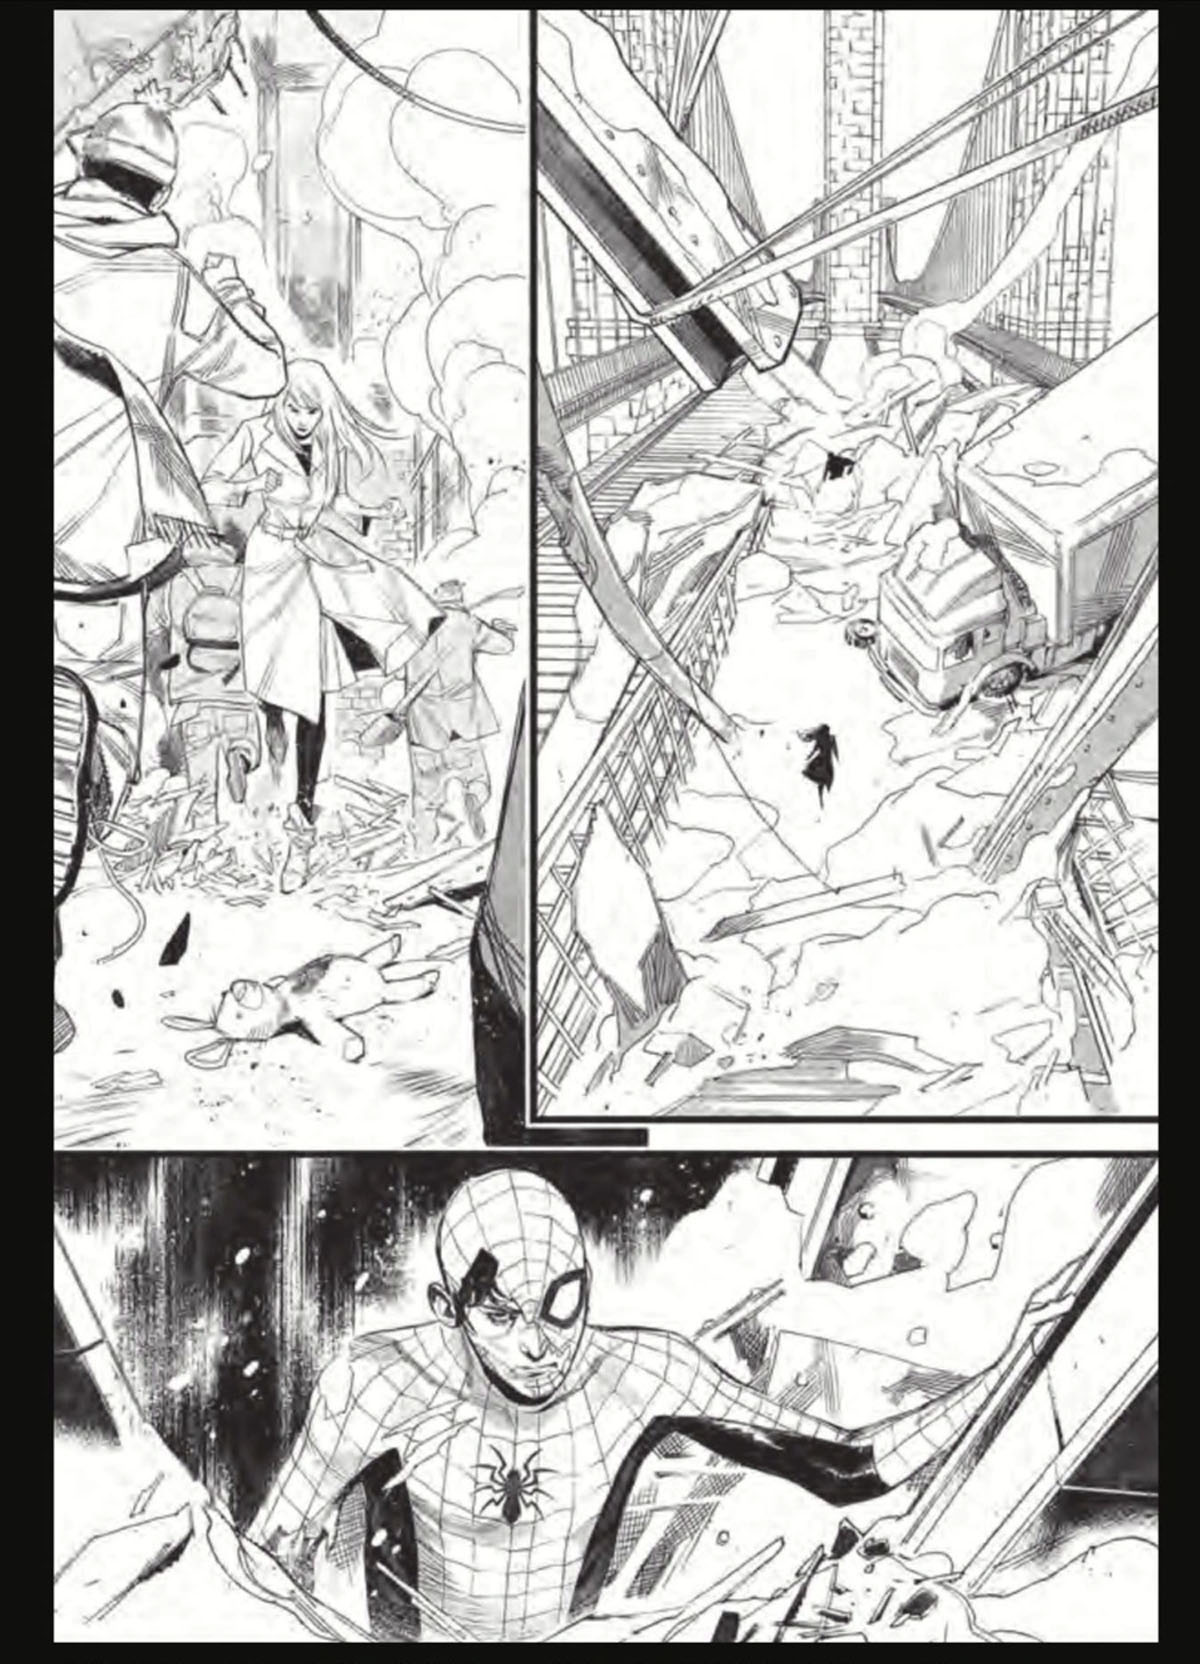 Spider-Man #1 preview page 1